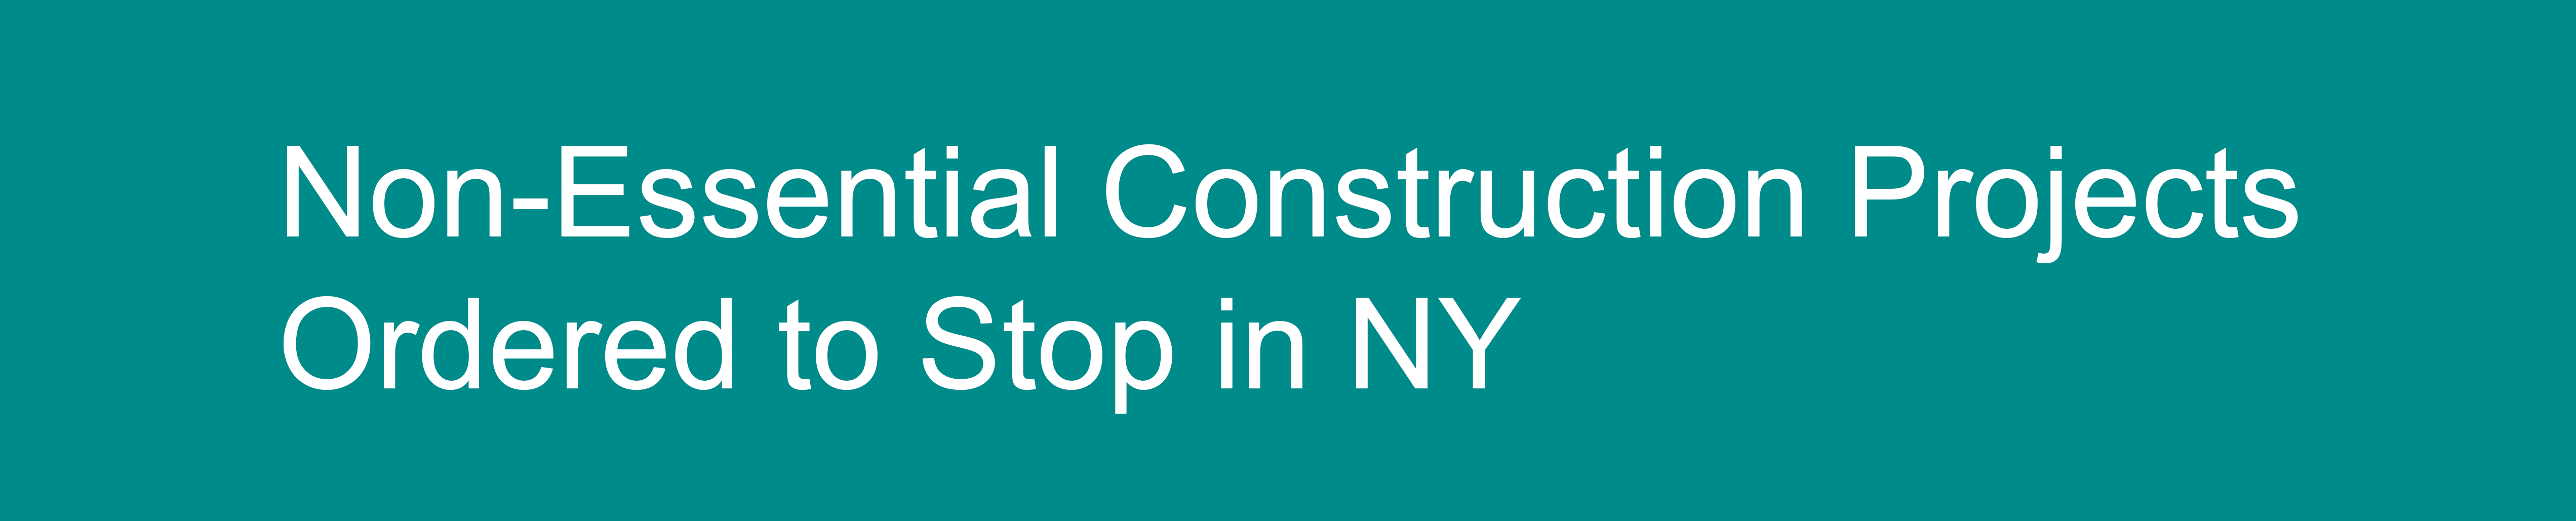 Non-Essential-Construction-Projects-Ordered-to-Stop-in-NY